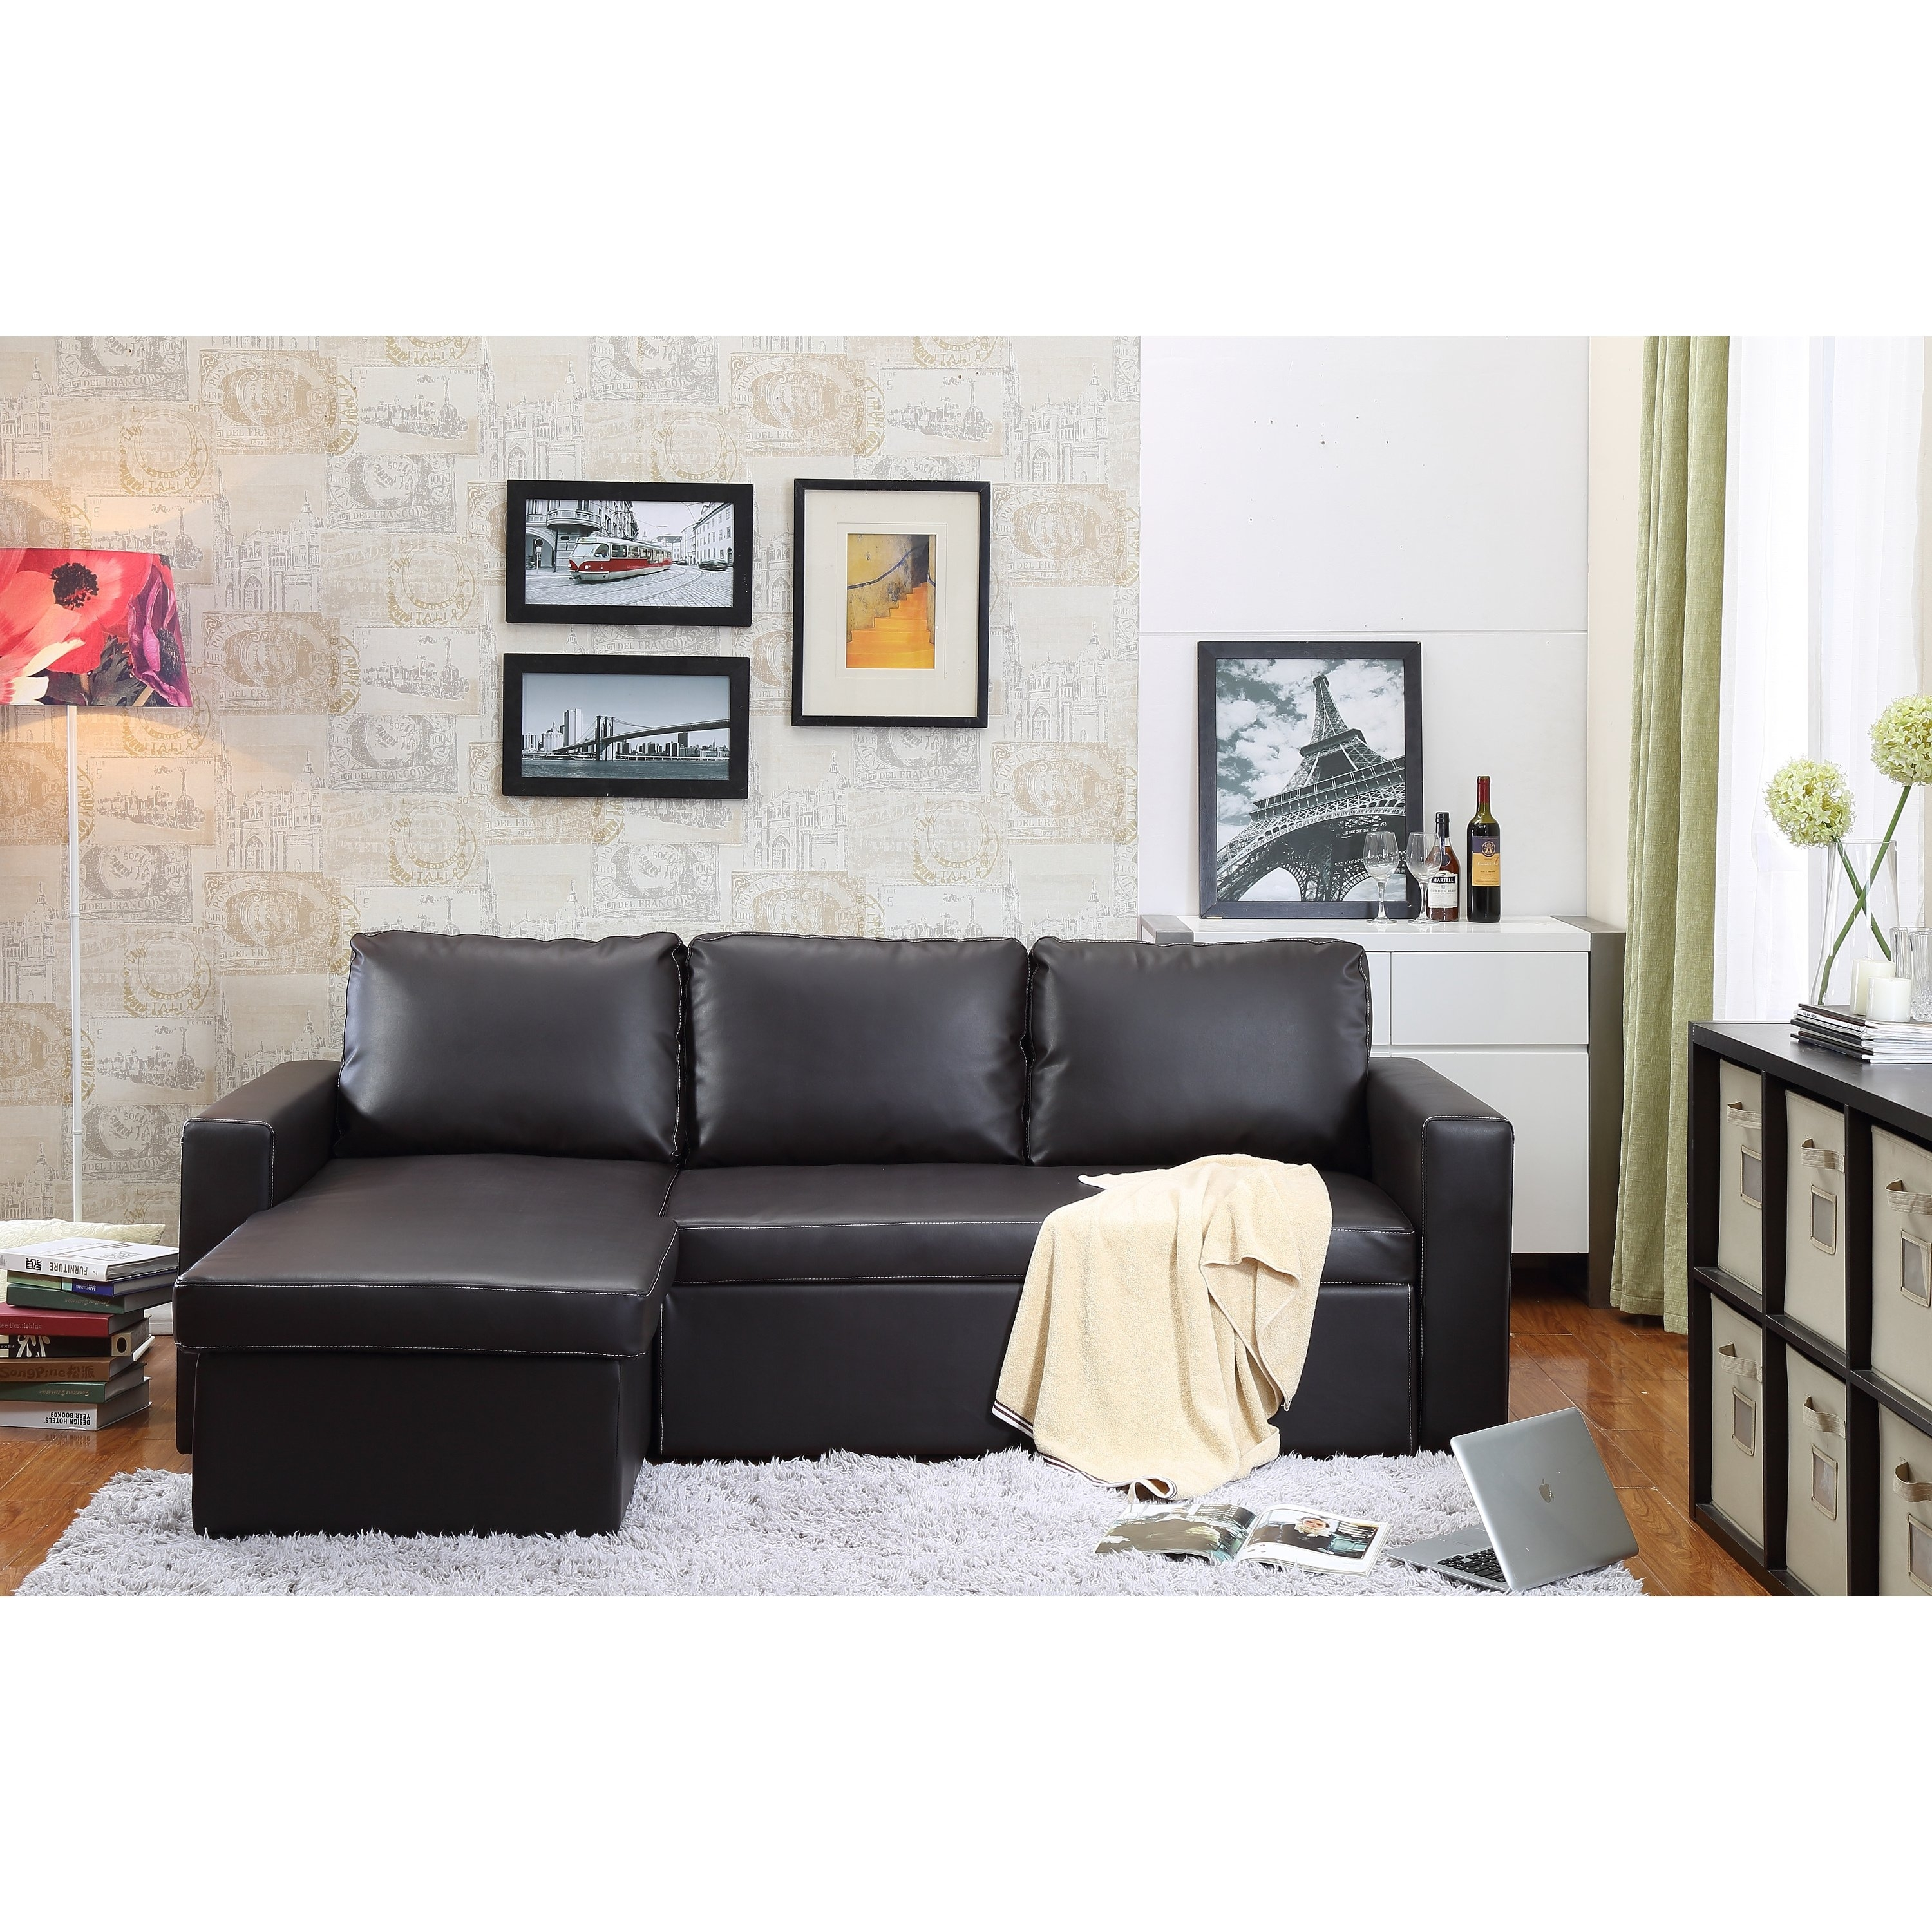 Shop The Hom Georgetown 2 Piece Brown Bi Cast Leather Sectional Sofa Regarding Nico Grey Sectionals With Left Facing Storage Chaise (Image 22 of 25)